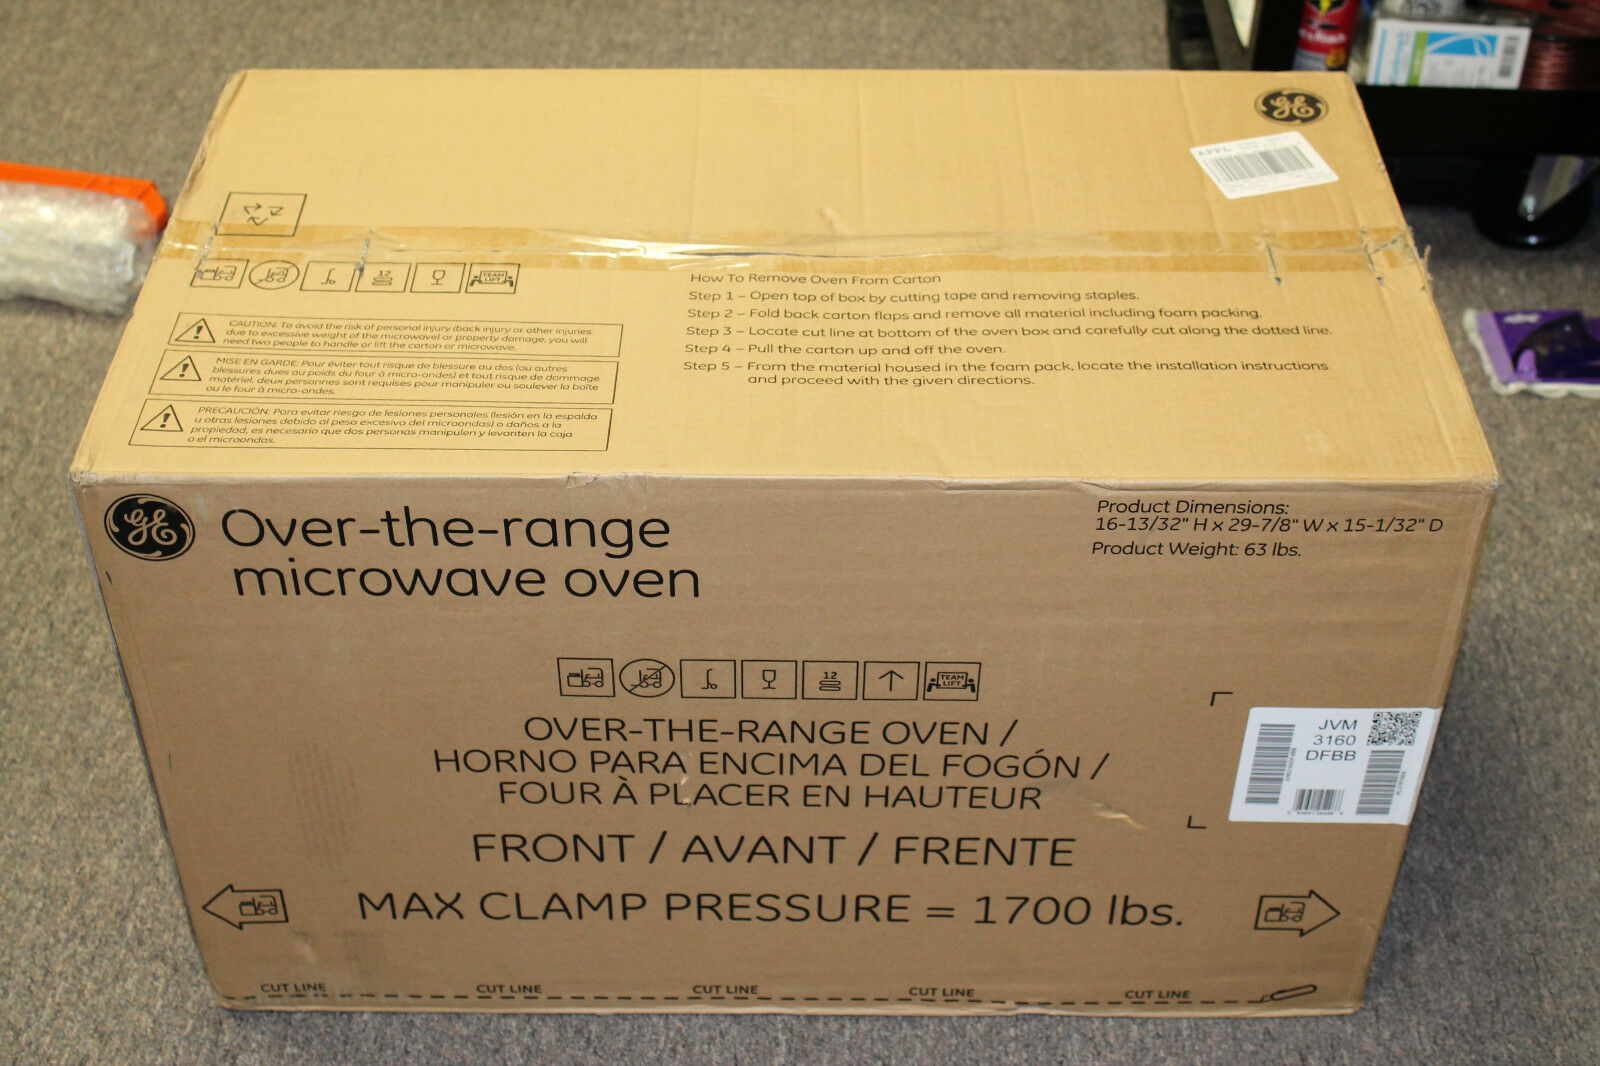 new 1 6 cu ft over